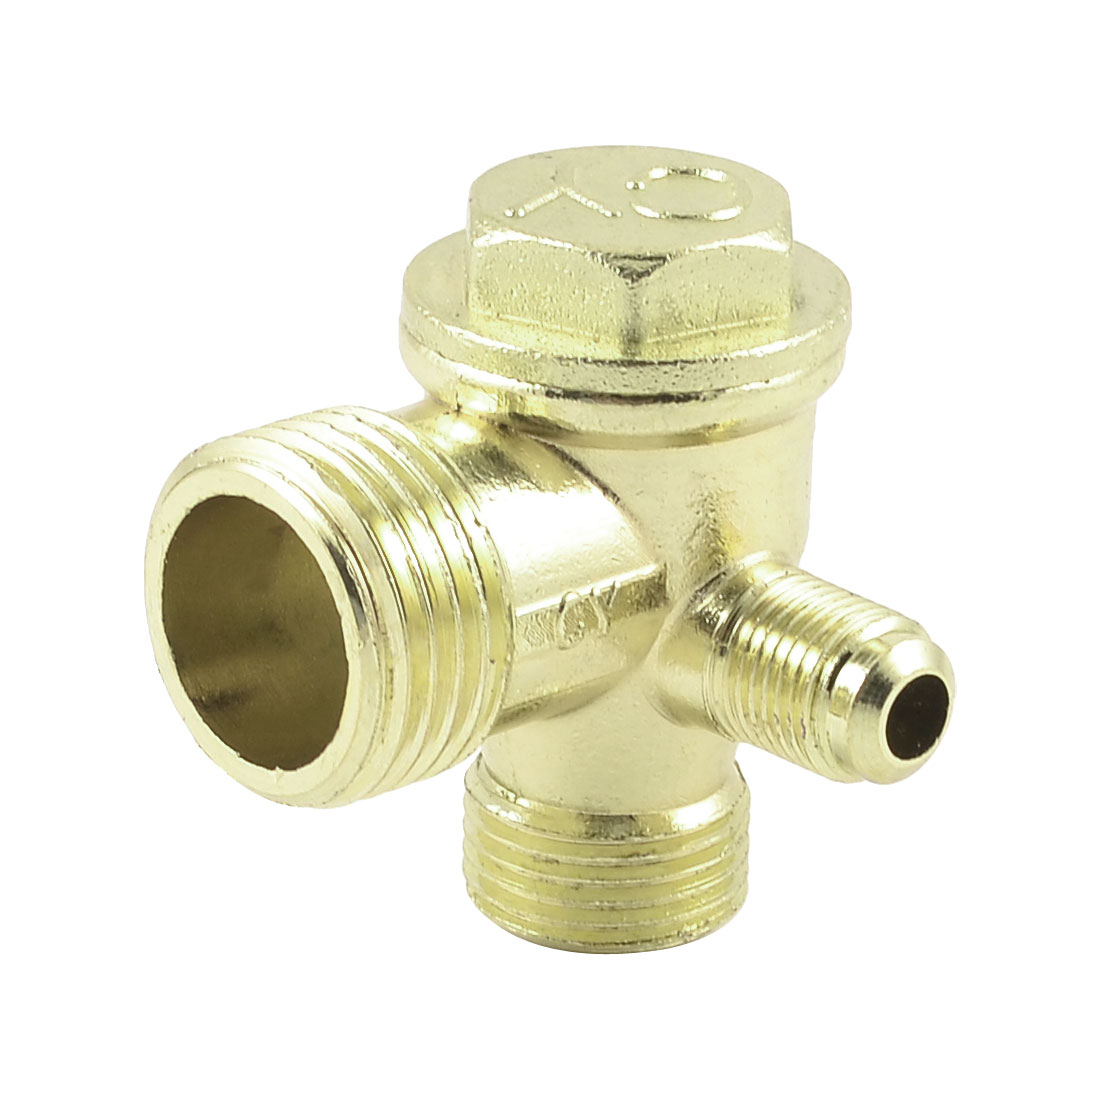 Brass 21mm 16mm 10mm Male Thread Tube Connector Air Compressor Check Valve